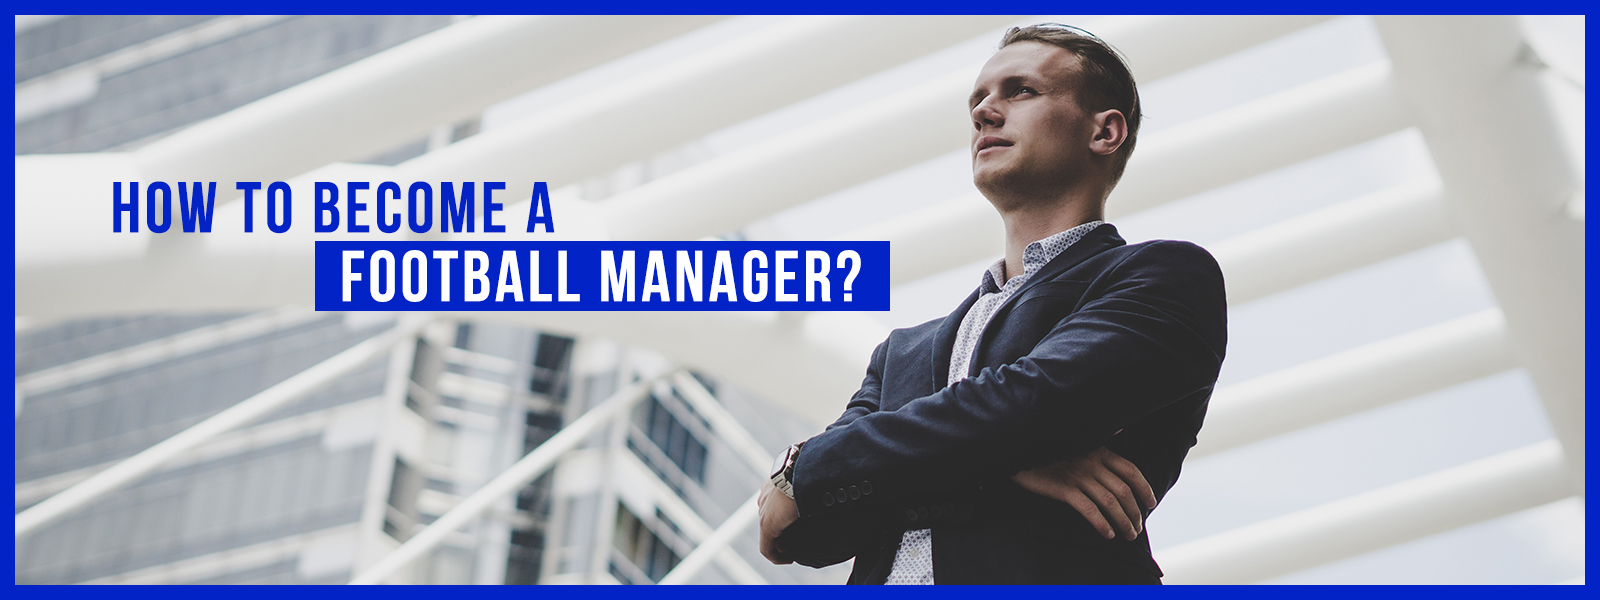 How To Become A Football Manager?